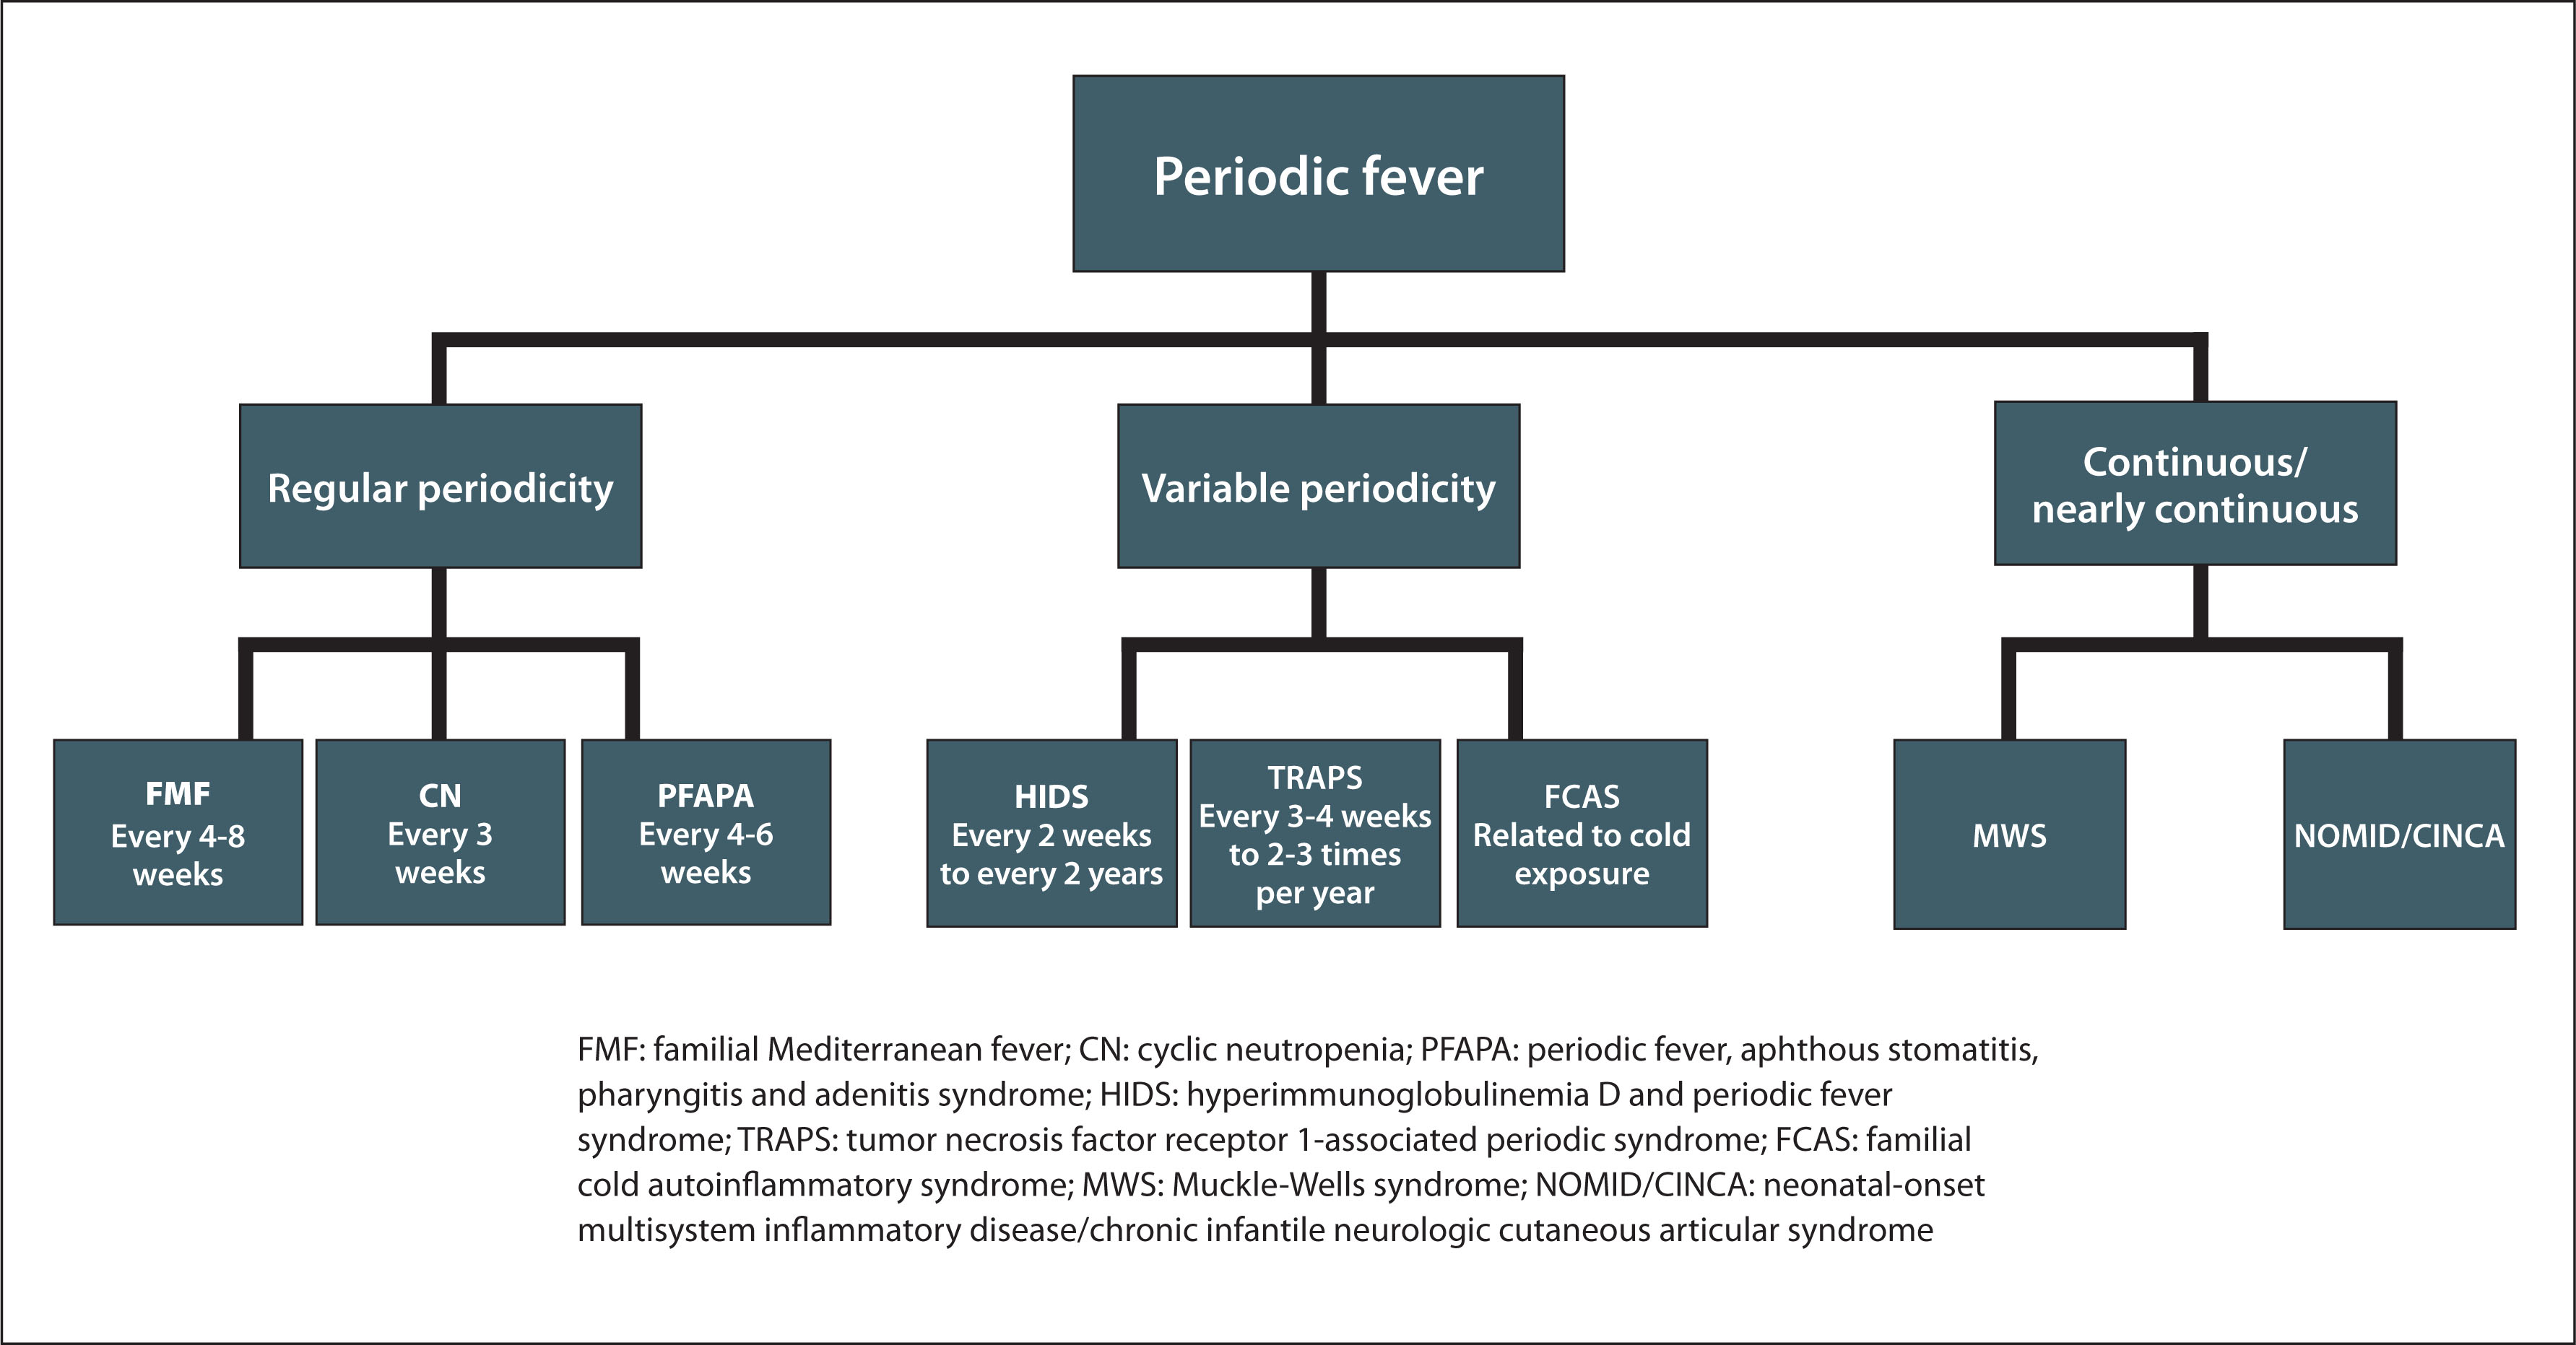 Stratification of Periodic Fever Syndromes Based on Fever Frequency. Source: Edwards KM.